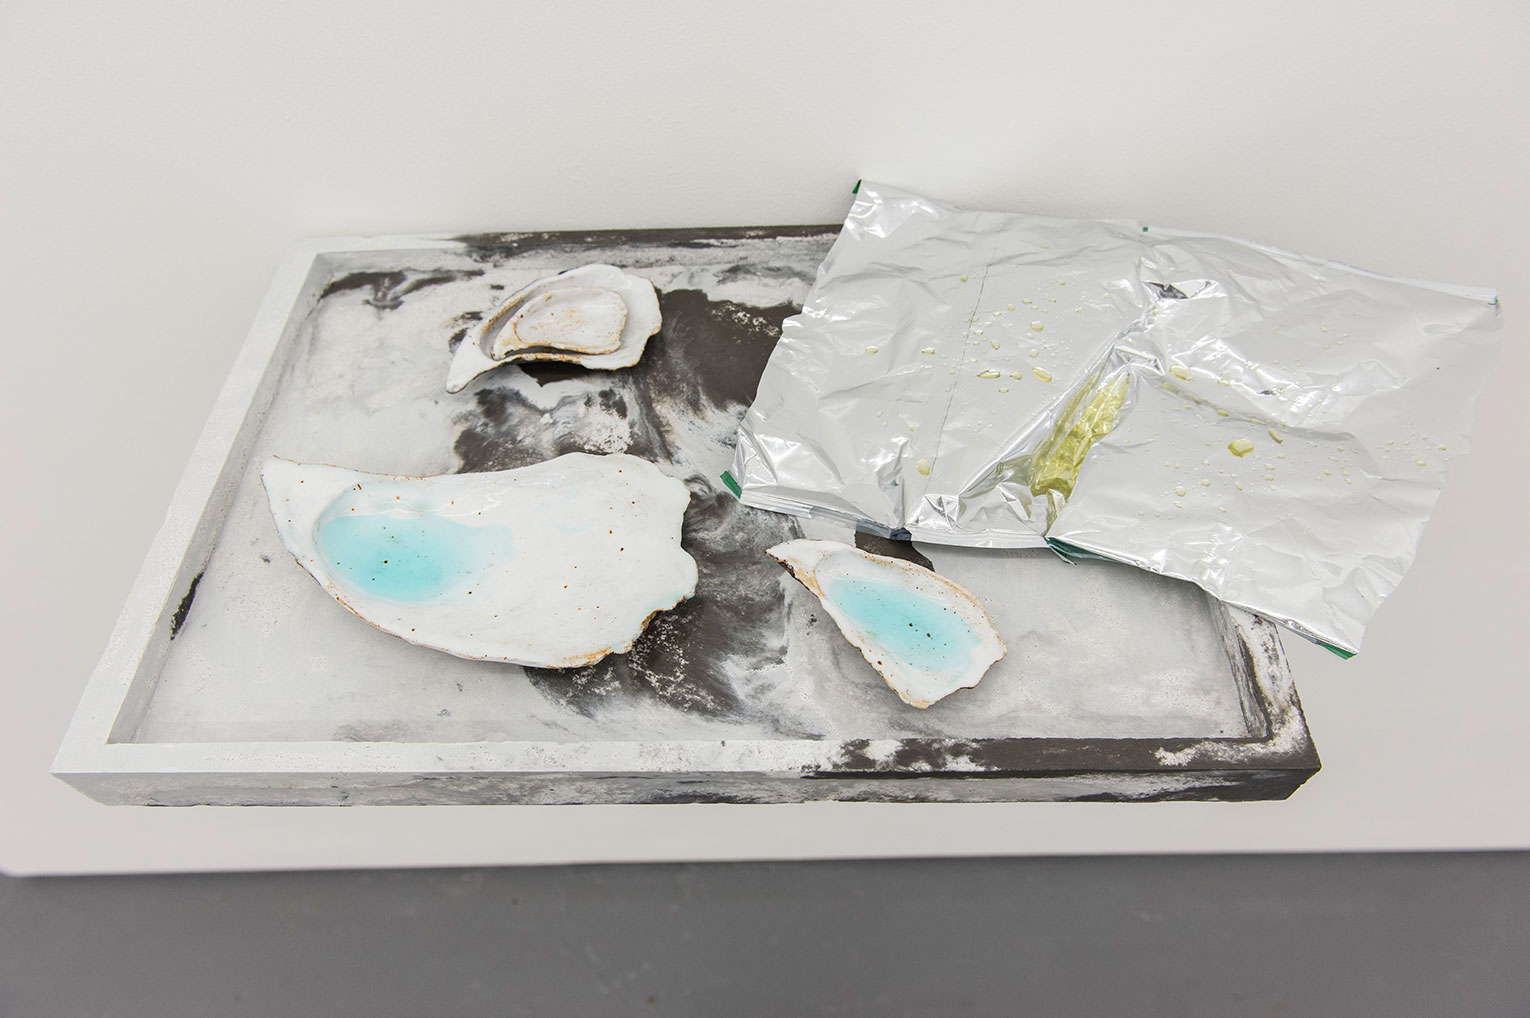 <b>Title:&nbsp;</b>Not Me But Me<br /><b>Year:&nbsp;</b>2016<br /><b>Medium:&nbsp;</b>Ciment Fondu, liquid soap, glazed ceramic, crisp packet, and resin<br /><b>Size:&nbsp;</b>8 x 57 x 31 cm